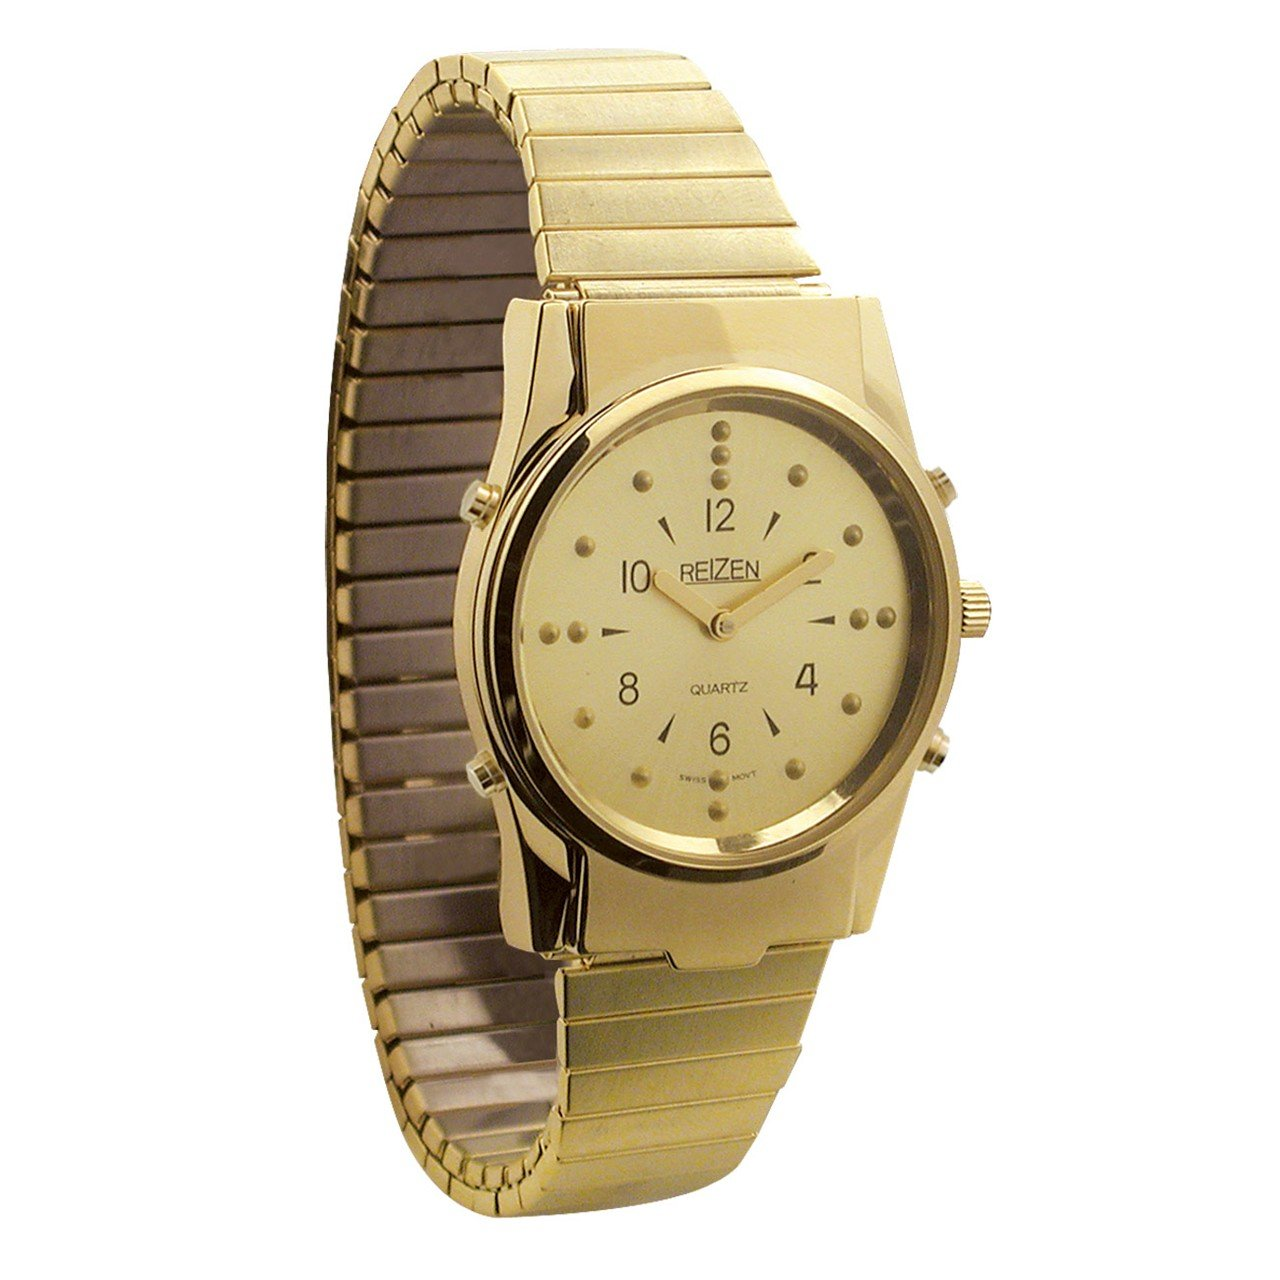 Mens Gold-Tone Braille and Talking Watch - Exp Band by Reizen